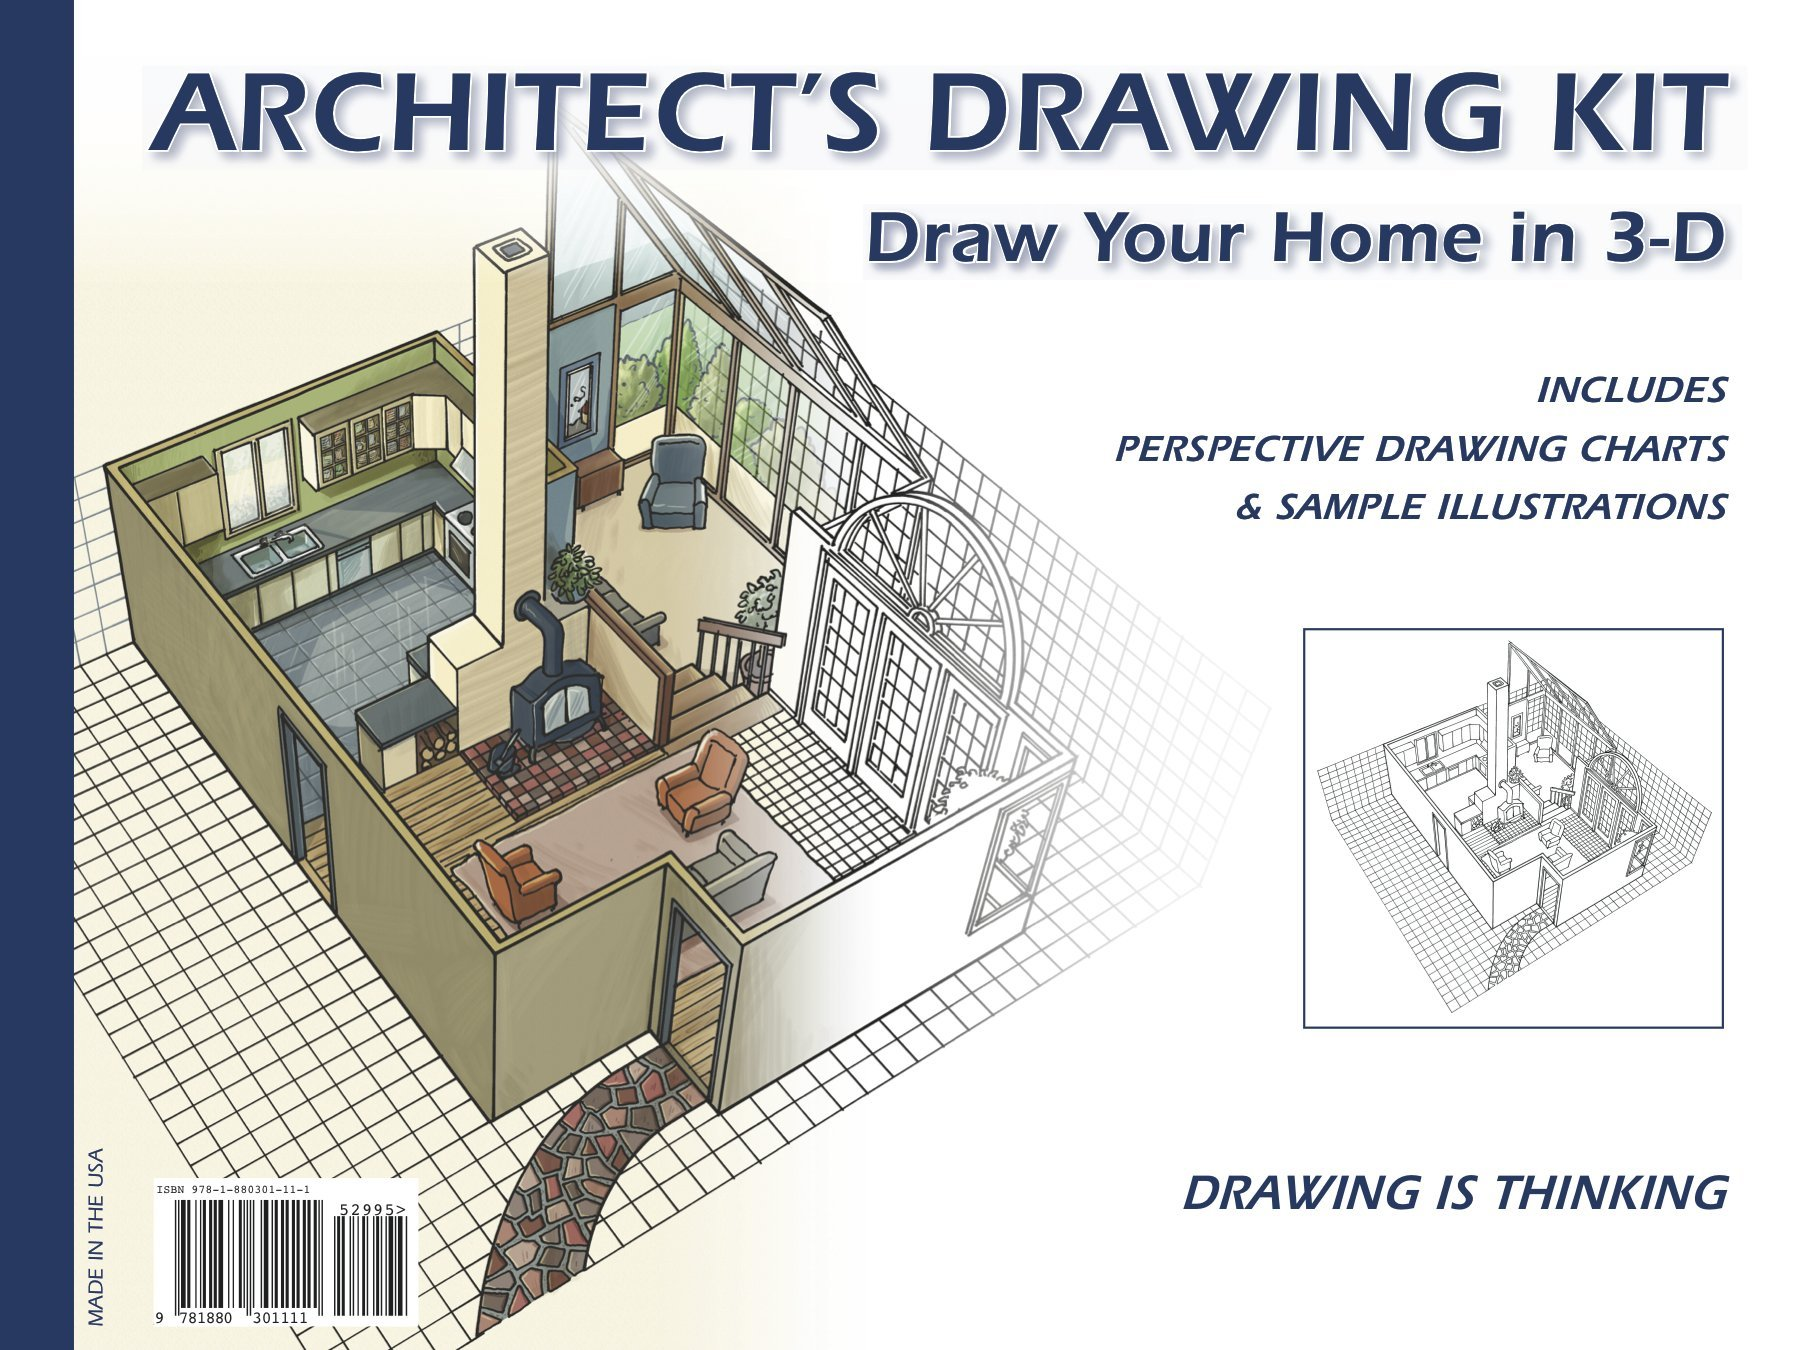 Architectu0027s Drawing Kit: Draw Your Home In 3 D: Daniel K. Reif, Peter Beck:  9781880301111: Amazon.com: Books